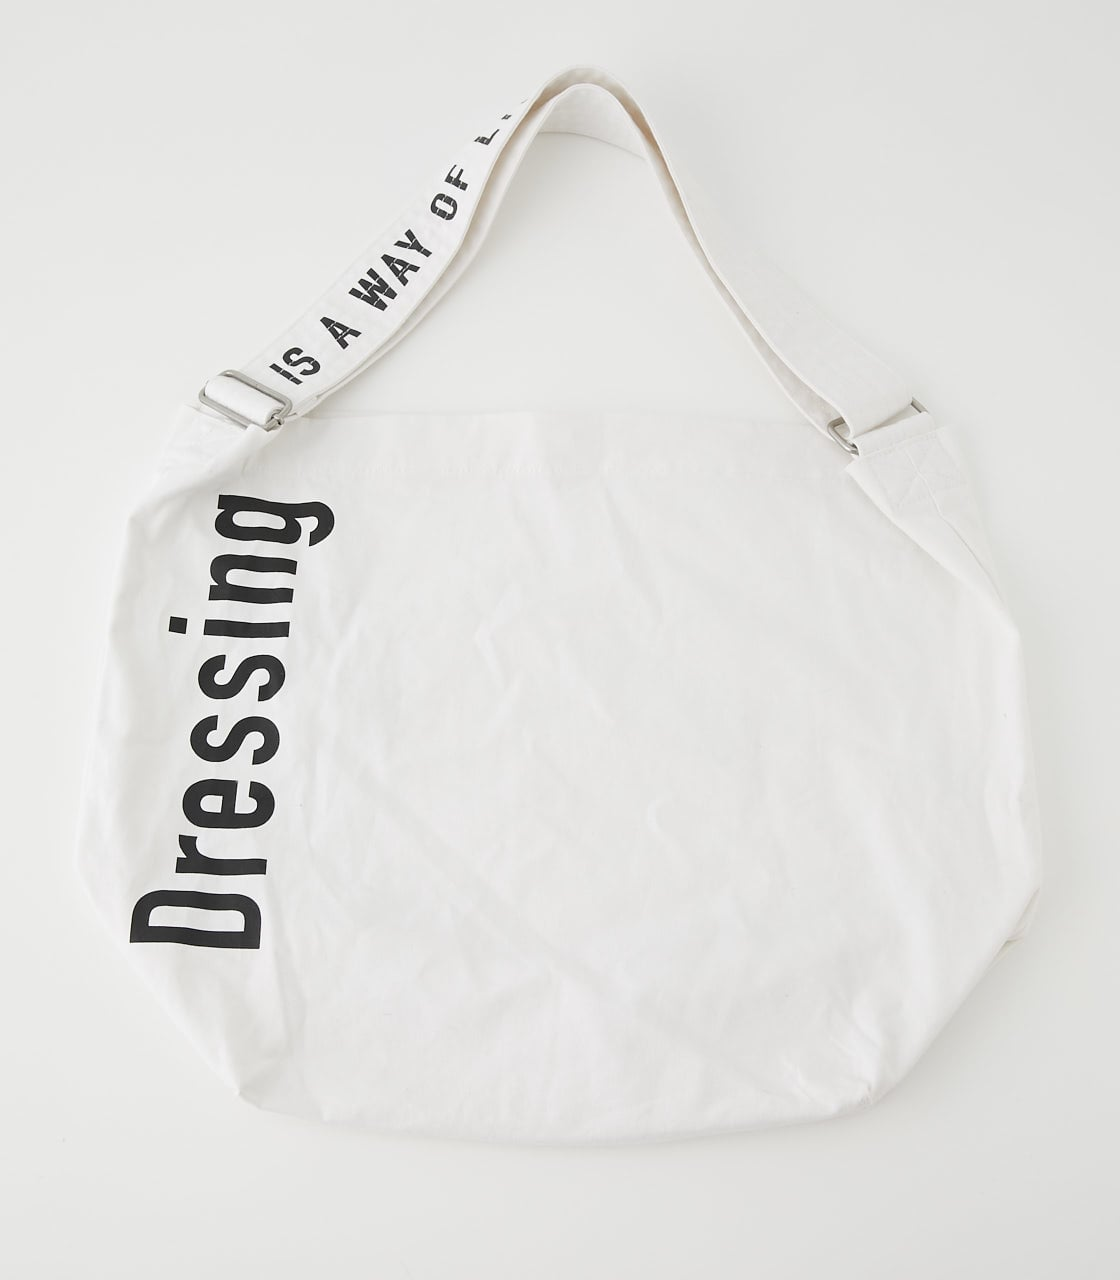 【AZUL BY MOUSSY】DRESSING TOTE BAG 詳細画像 WHT 6